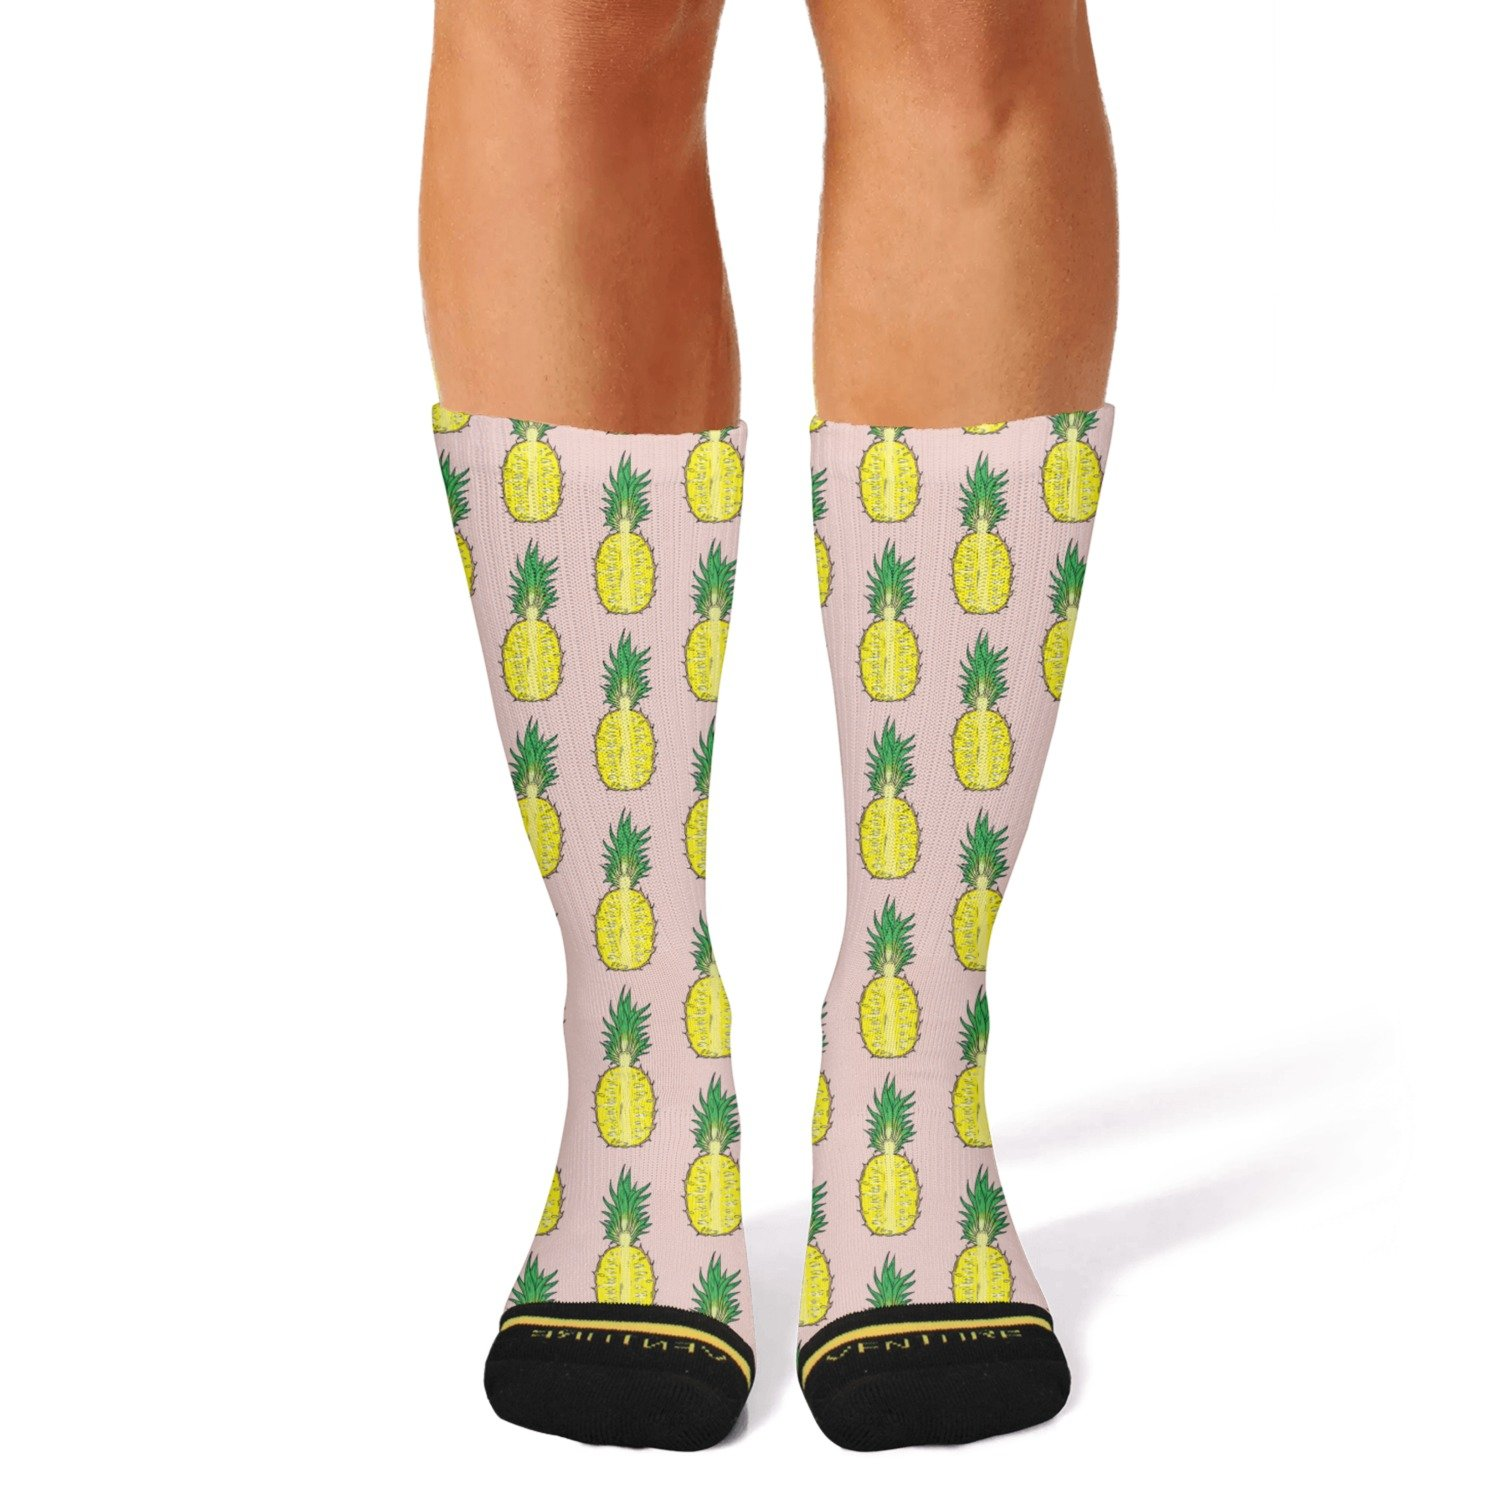 Print Fruits With Funny Pineapples Fashion Women's/mens Sporty Knee High Socks Ouawjdff